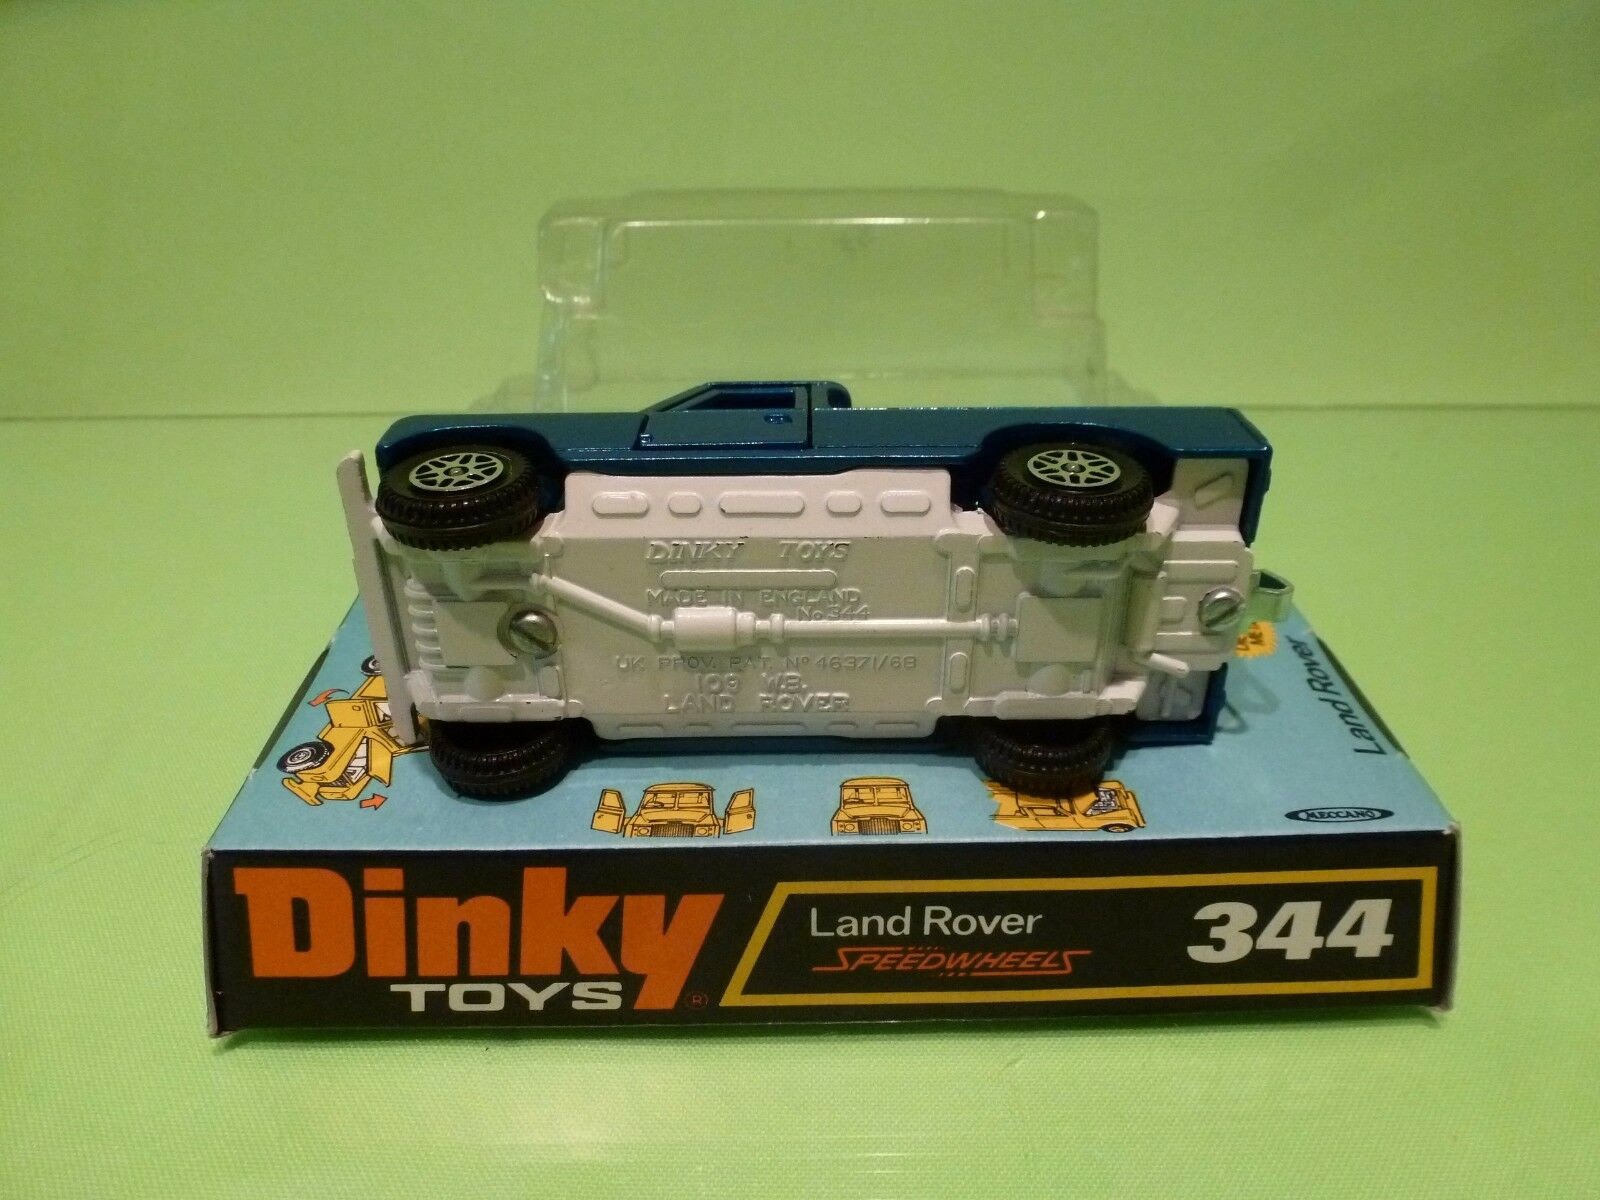 DINKY DINKY DINKY TOYS SPEEDWHEELS 344 LAND ROVER - blueE - EXCELLENT CONDITION IN BOX 06bef9